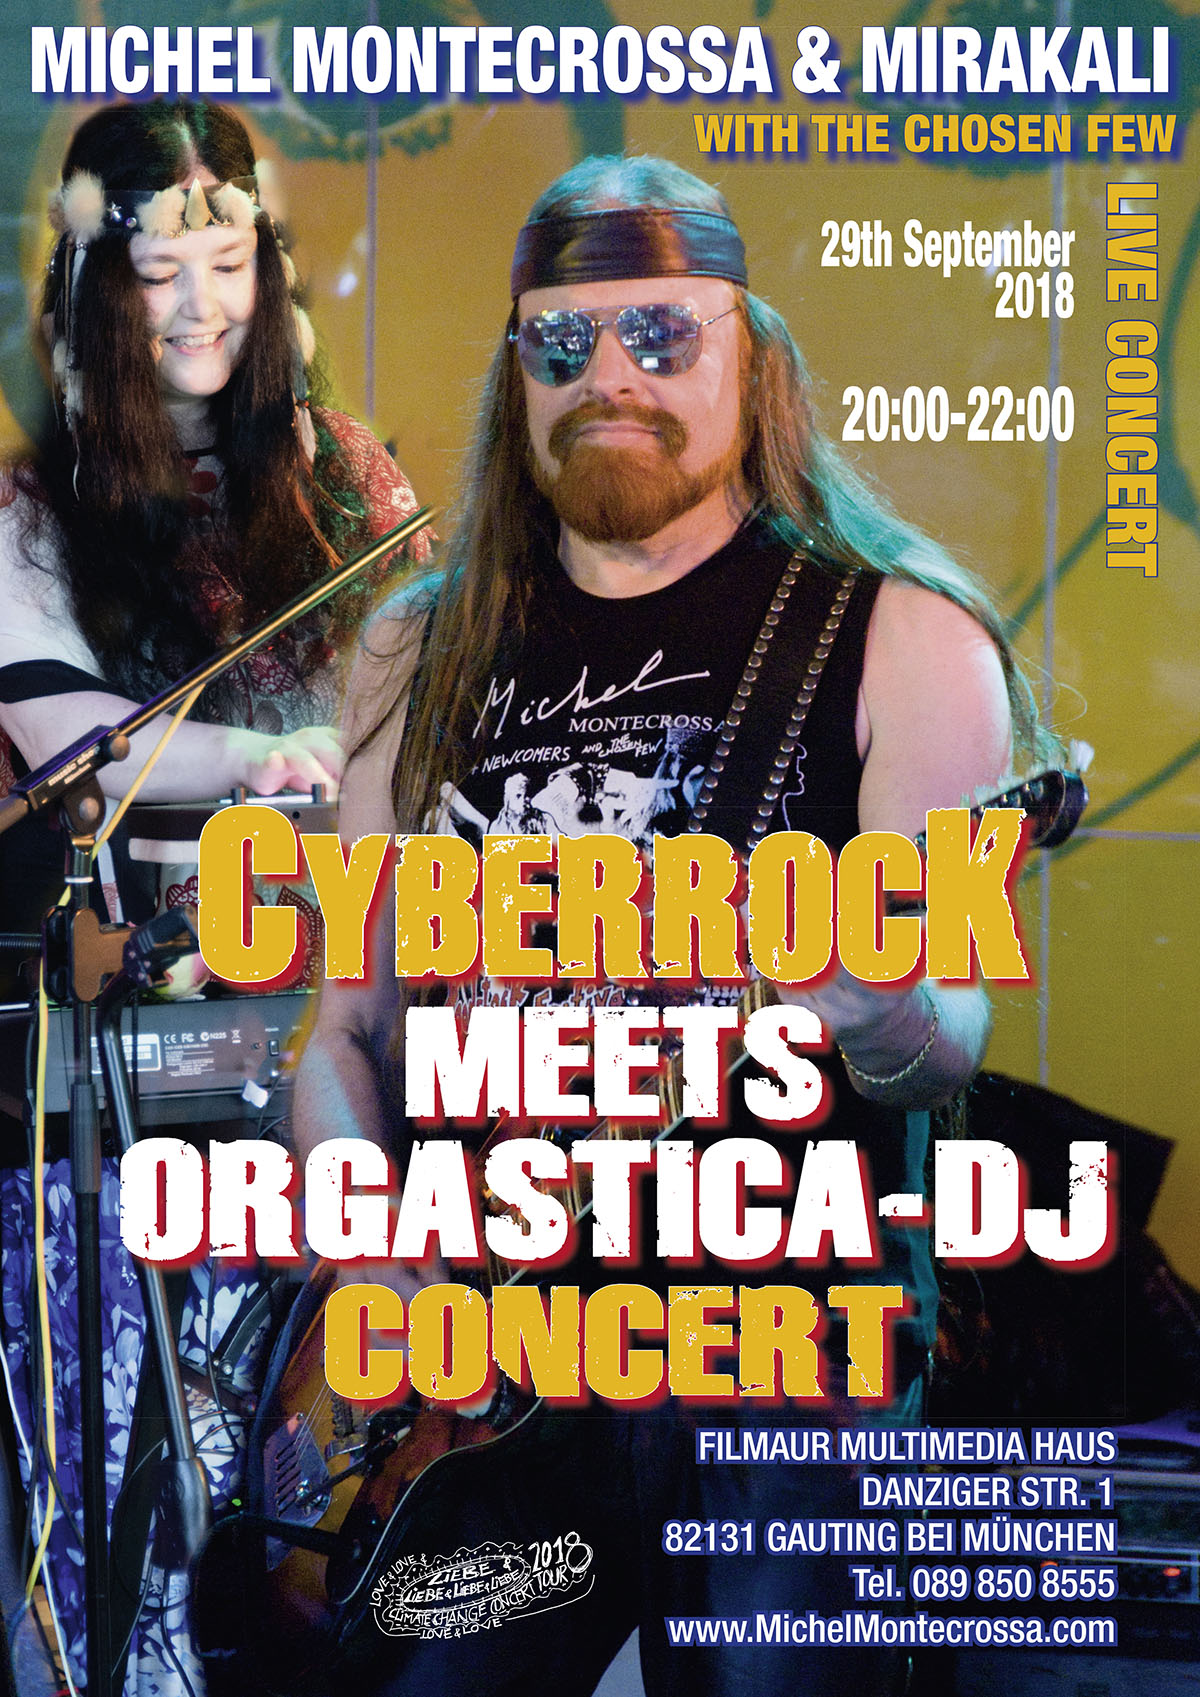 Concert Poster: 'Cyberrock Meets Orgastica-DJ' Concert with Michel Montecrossa & Mirakali on 29th September 2018 at the Filmaur Multimedia House (Gauting near Munich, Germany)